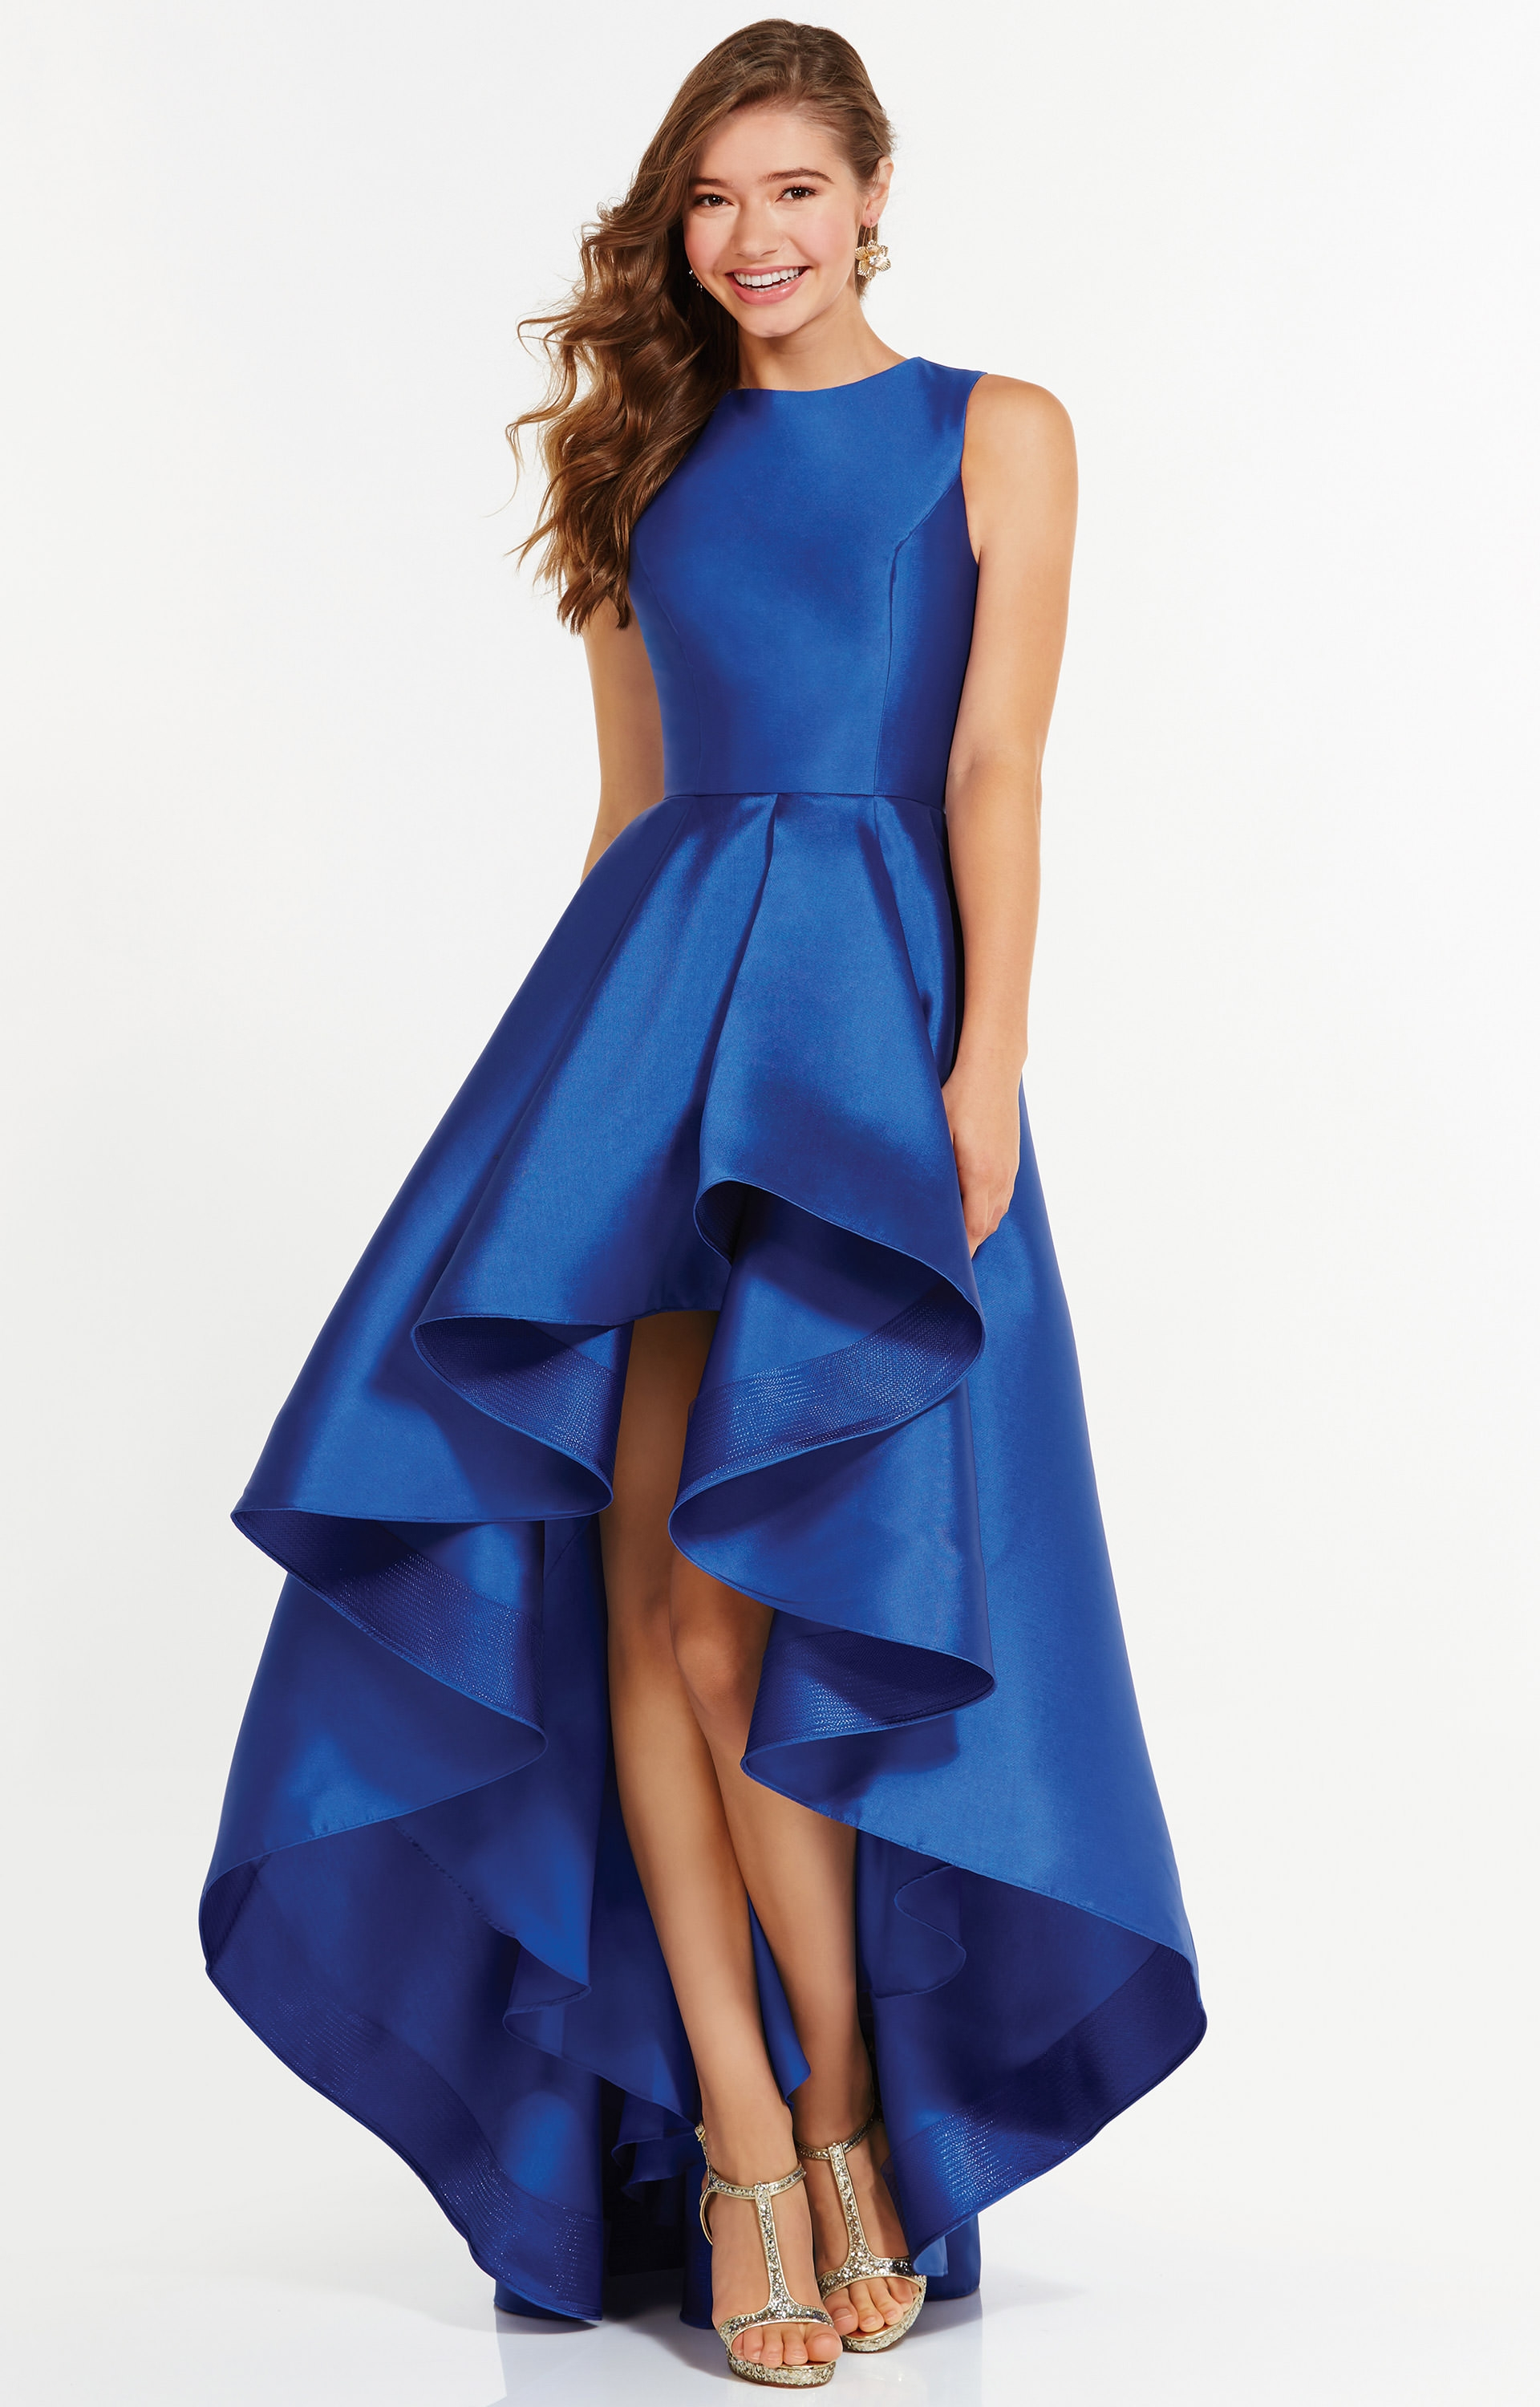 Alyce Paris 6826  Sleeveless HiLow Mikado with Ruffle Skirt Prom Dress